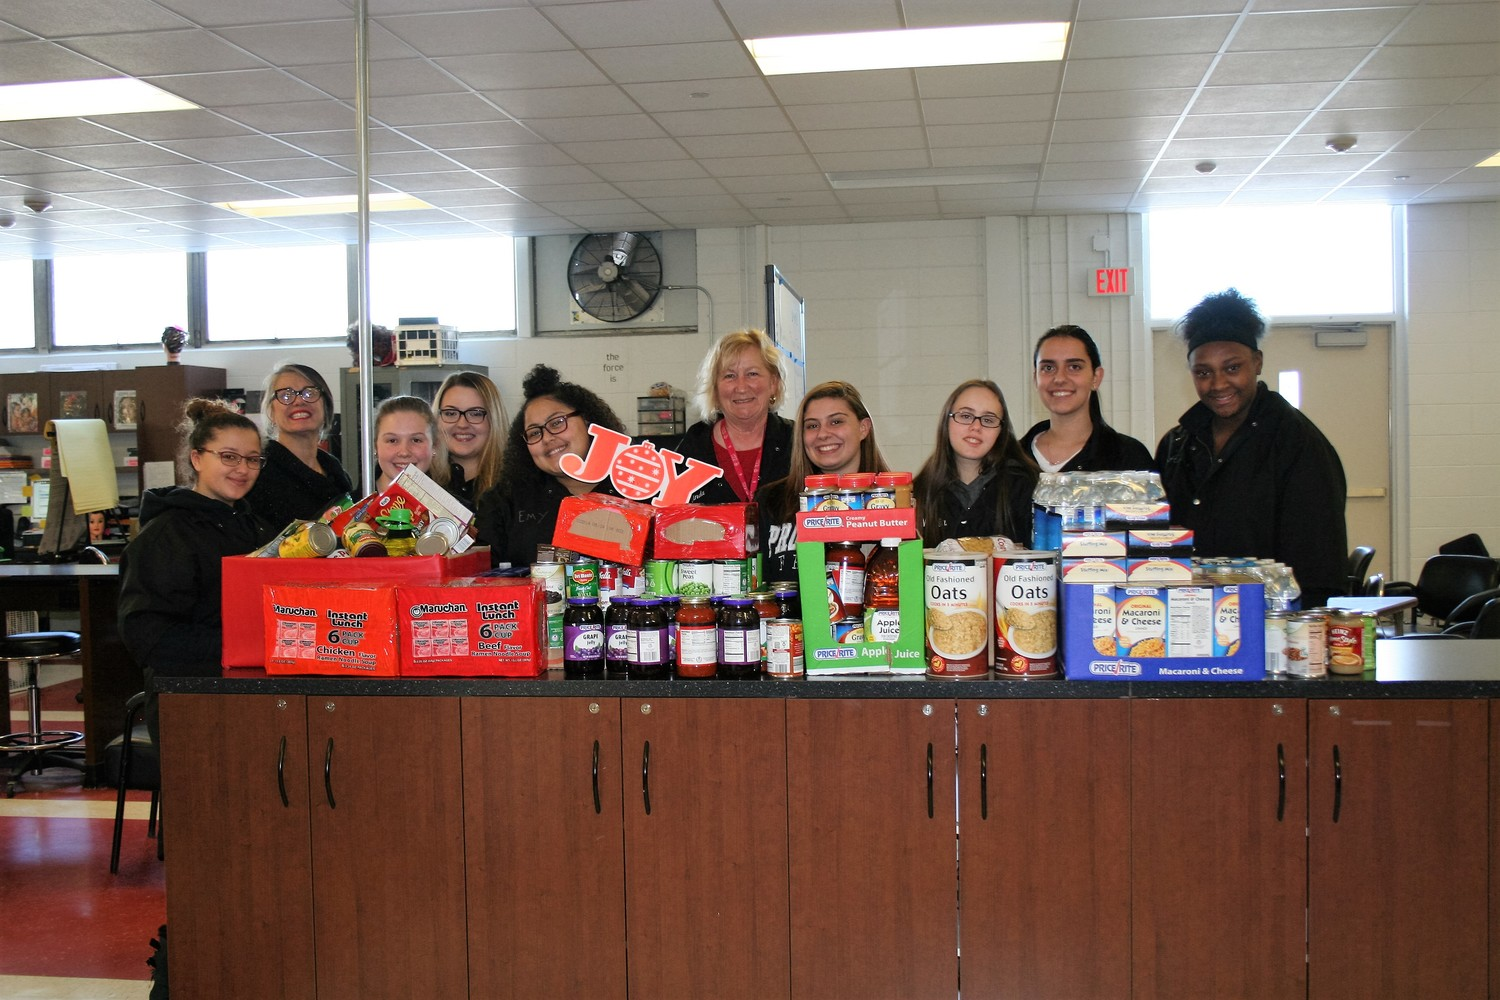 Winners of the canned food drive, Cosmetology, standing with their collection